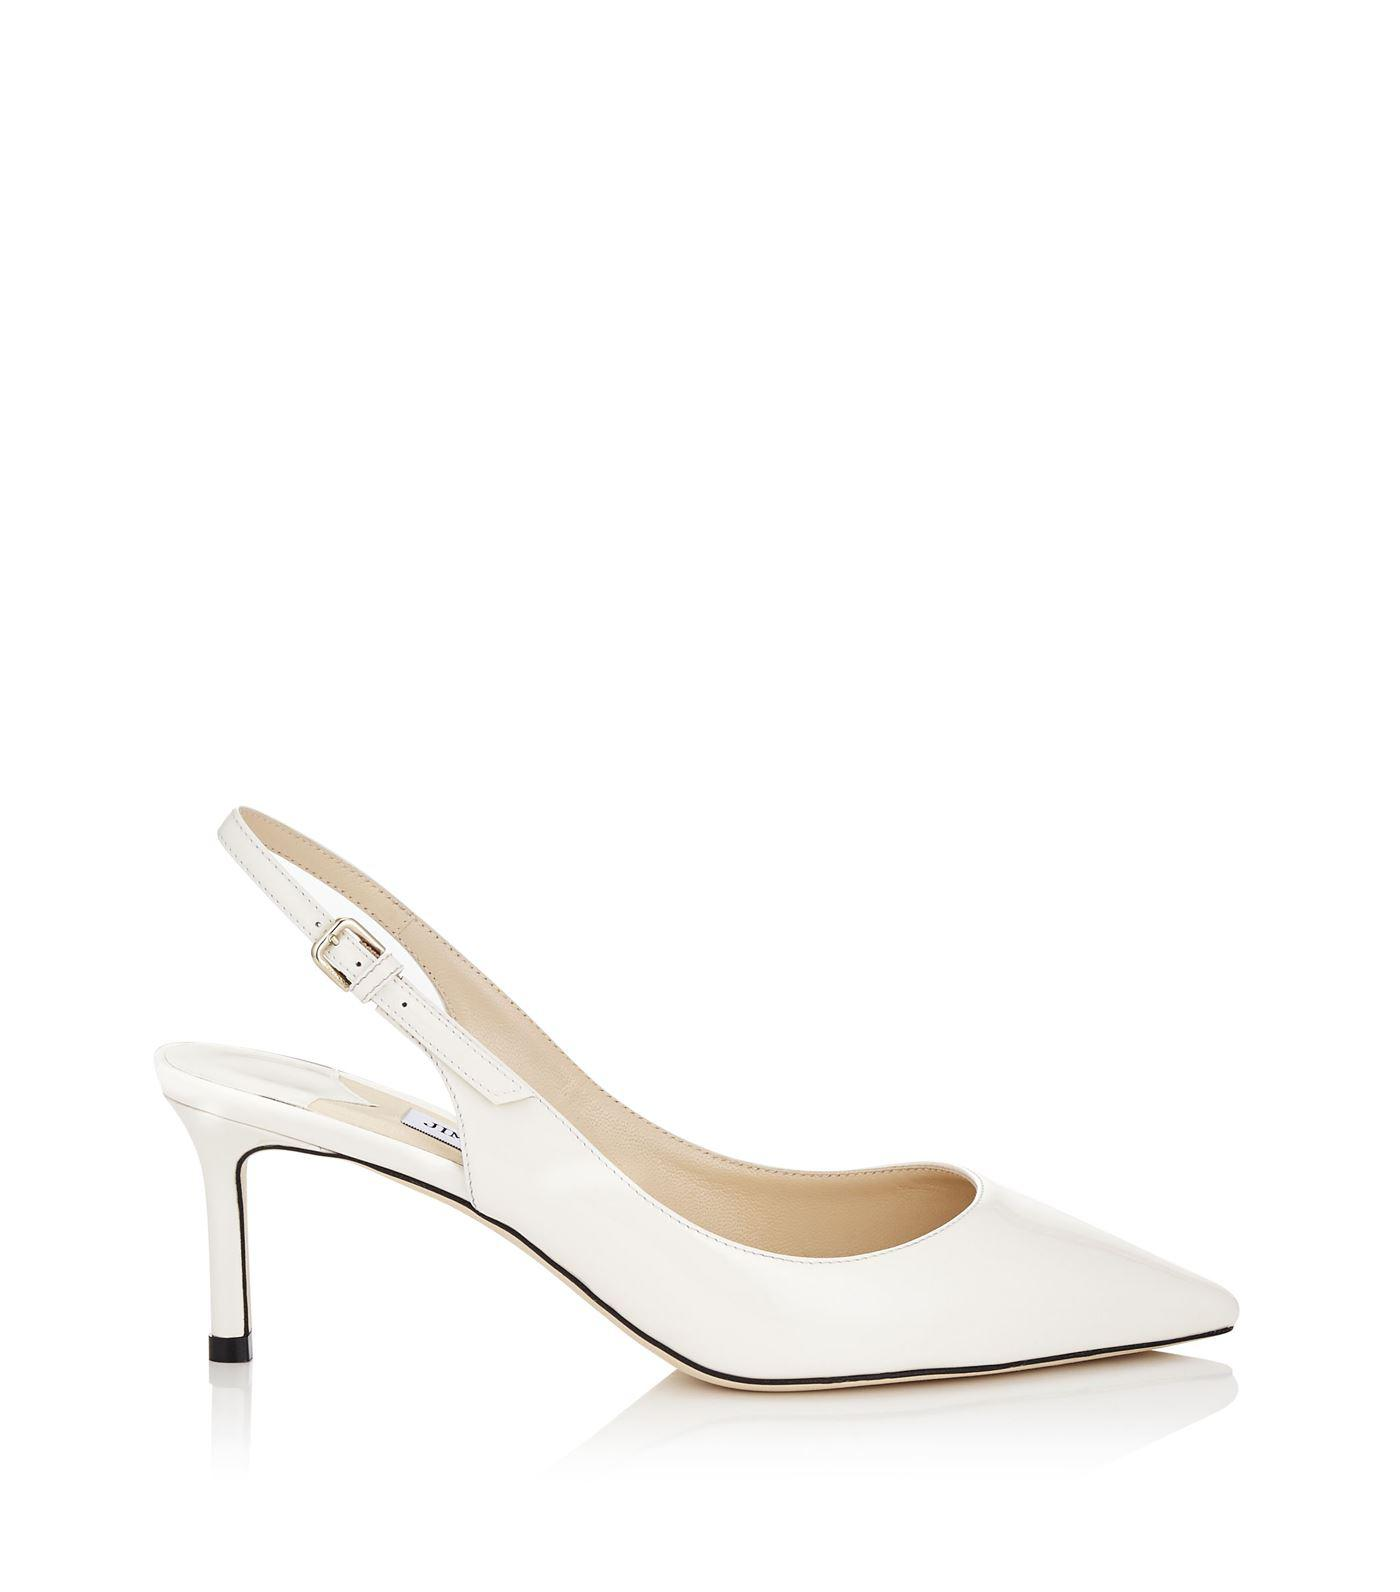 bd4419abb0 Jimmy Choo Erin 60 Leather Slingback Pumps in White - Save 47% - Lyst